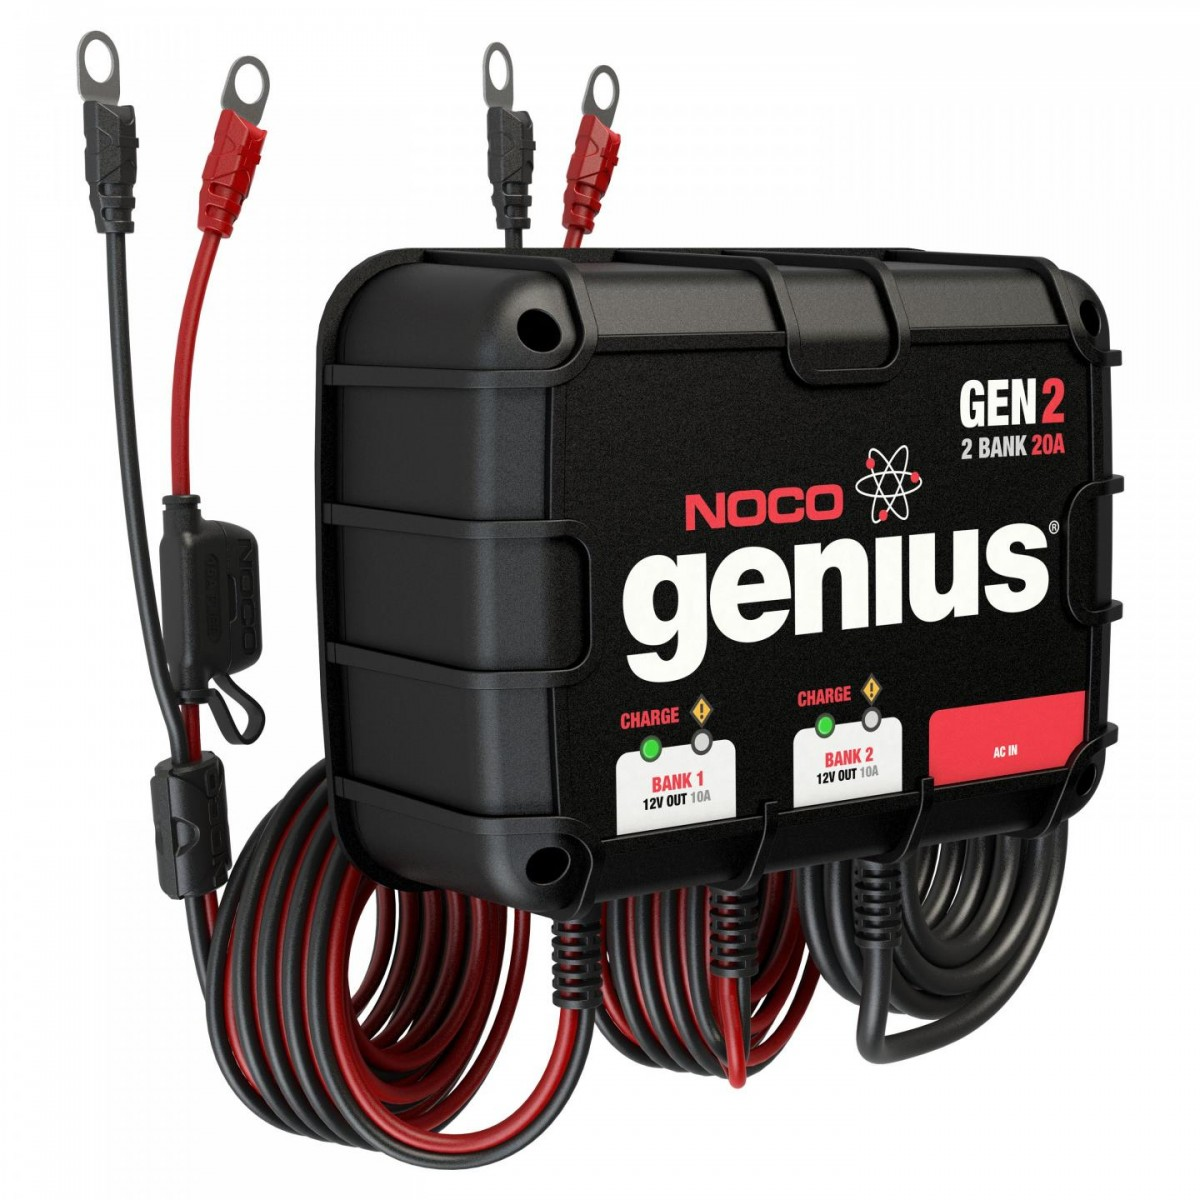 Noco 2 Bank 20a On Board Battery Charger Gen2